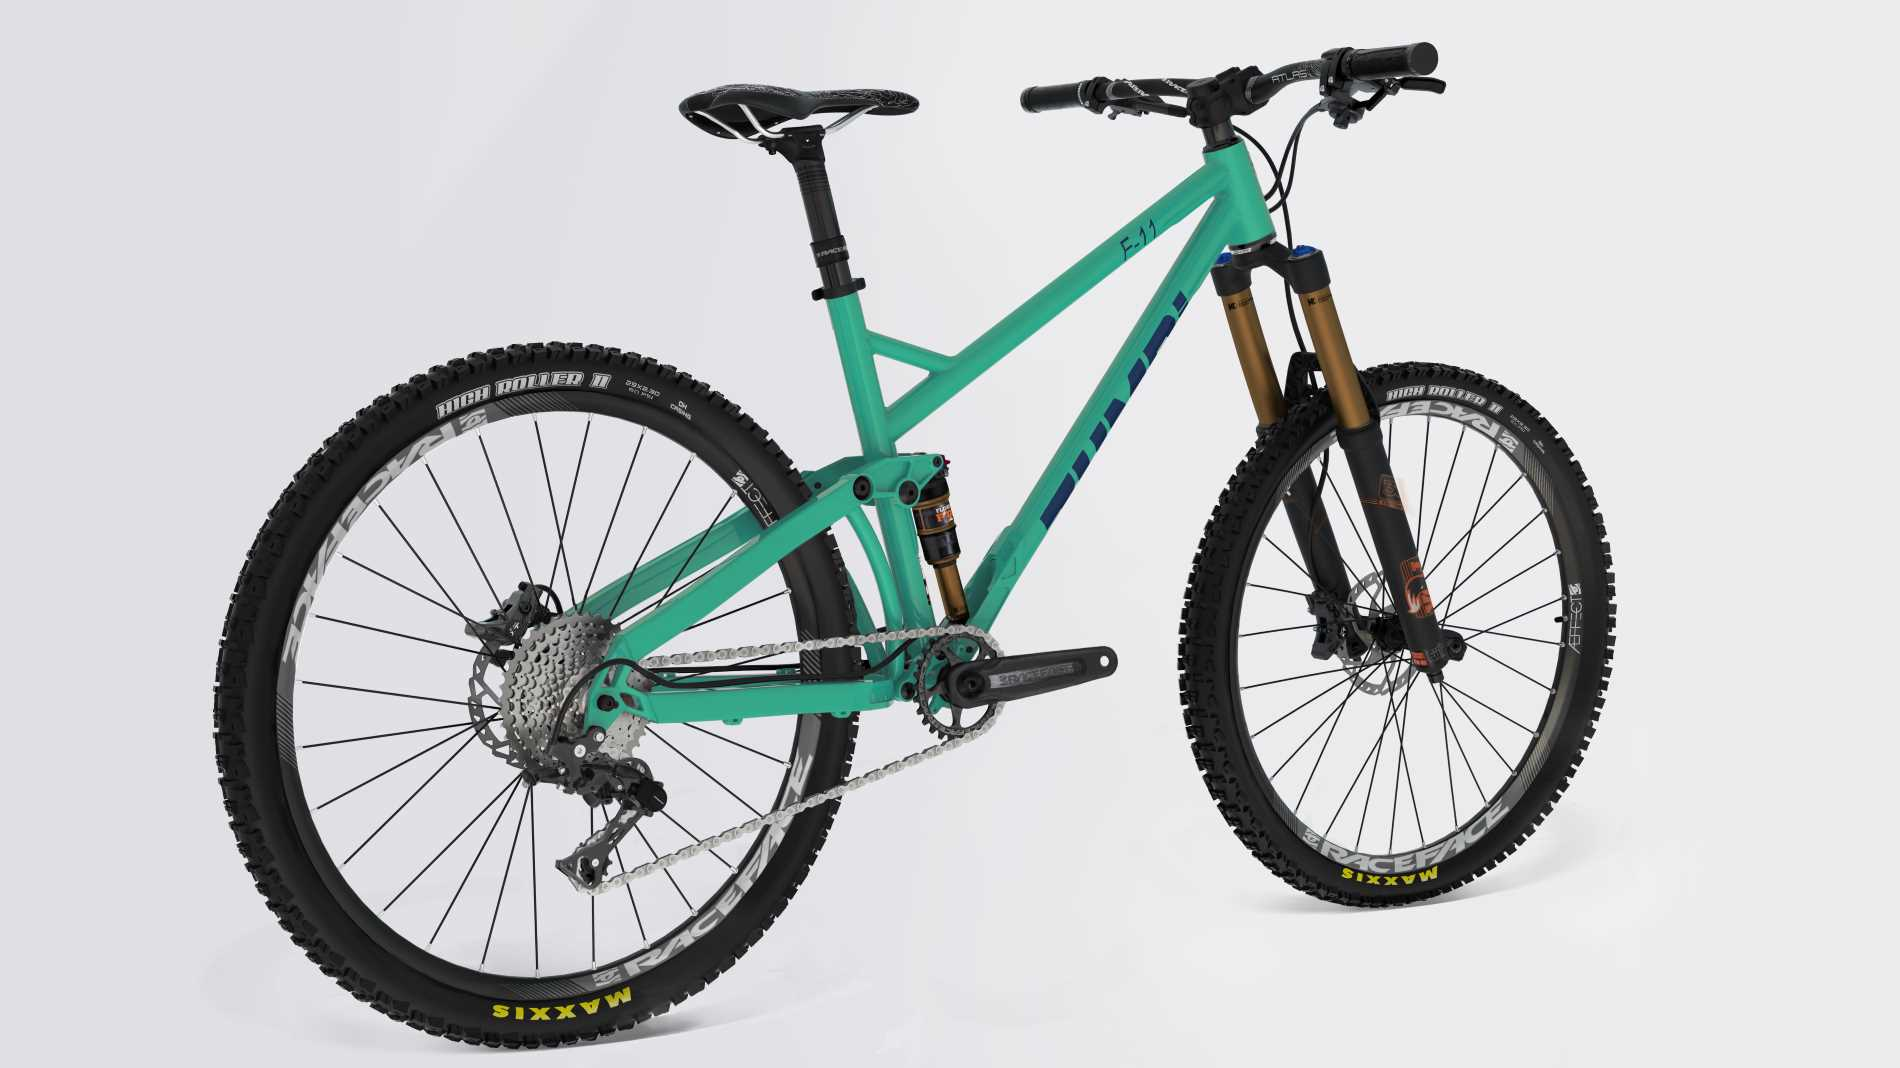 mtb bike 29 fox zumbi cycles racing front